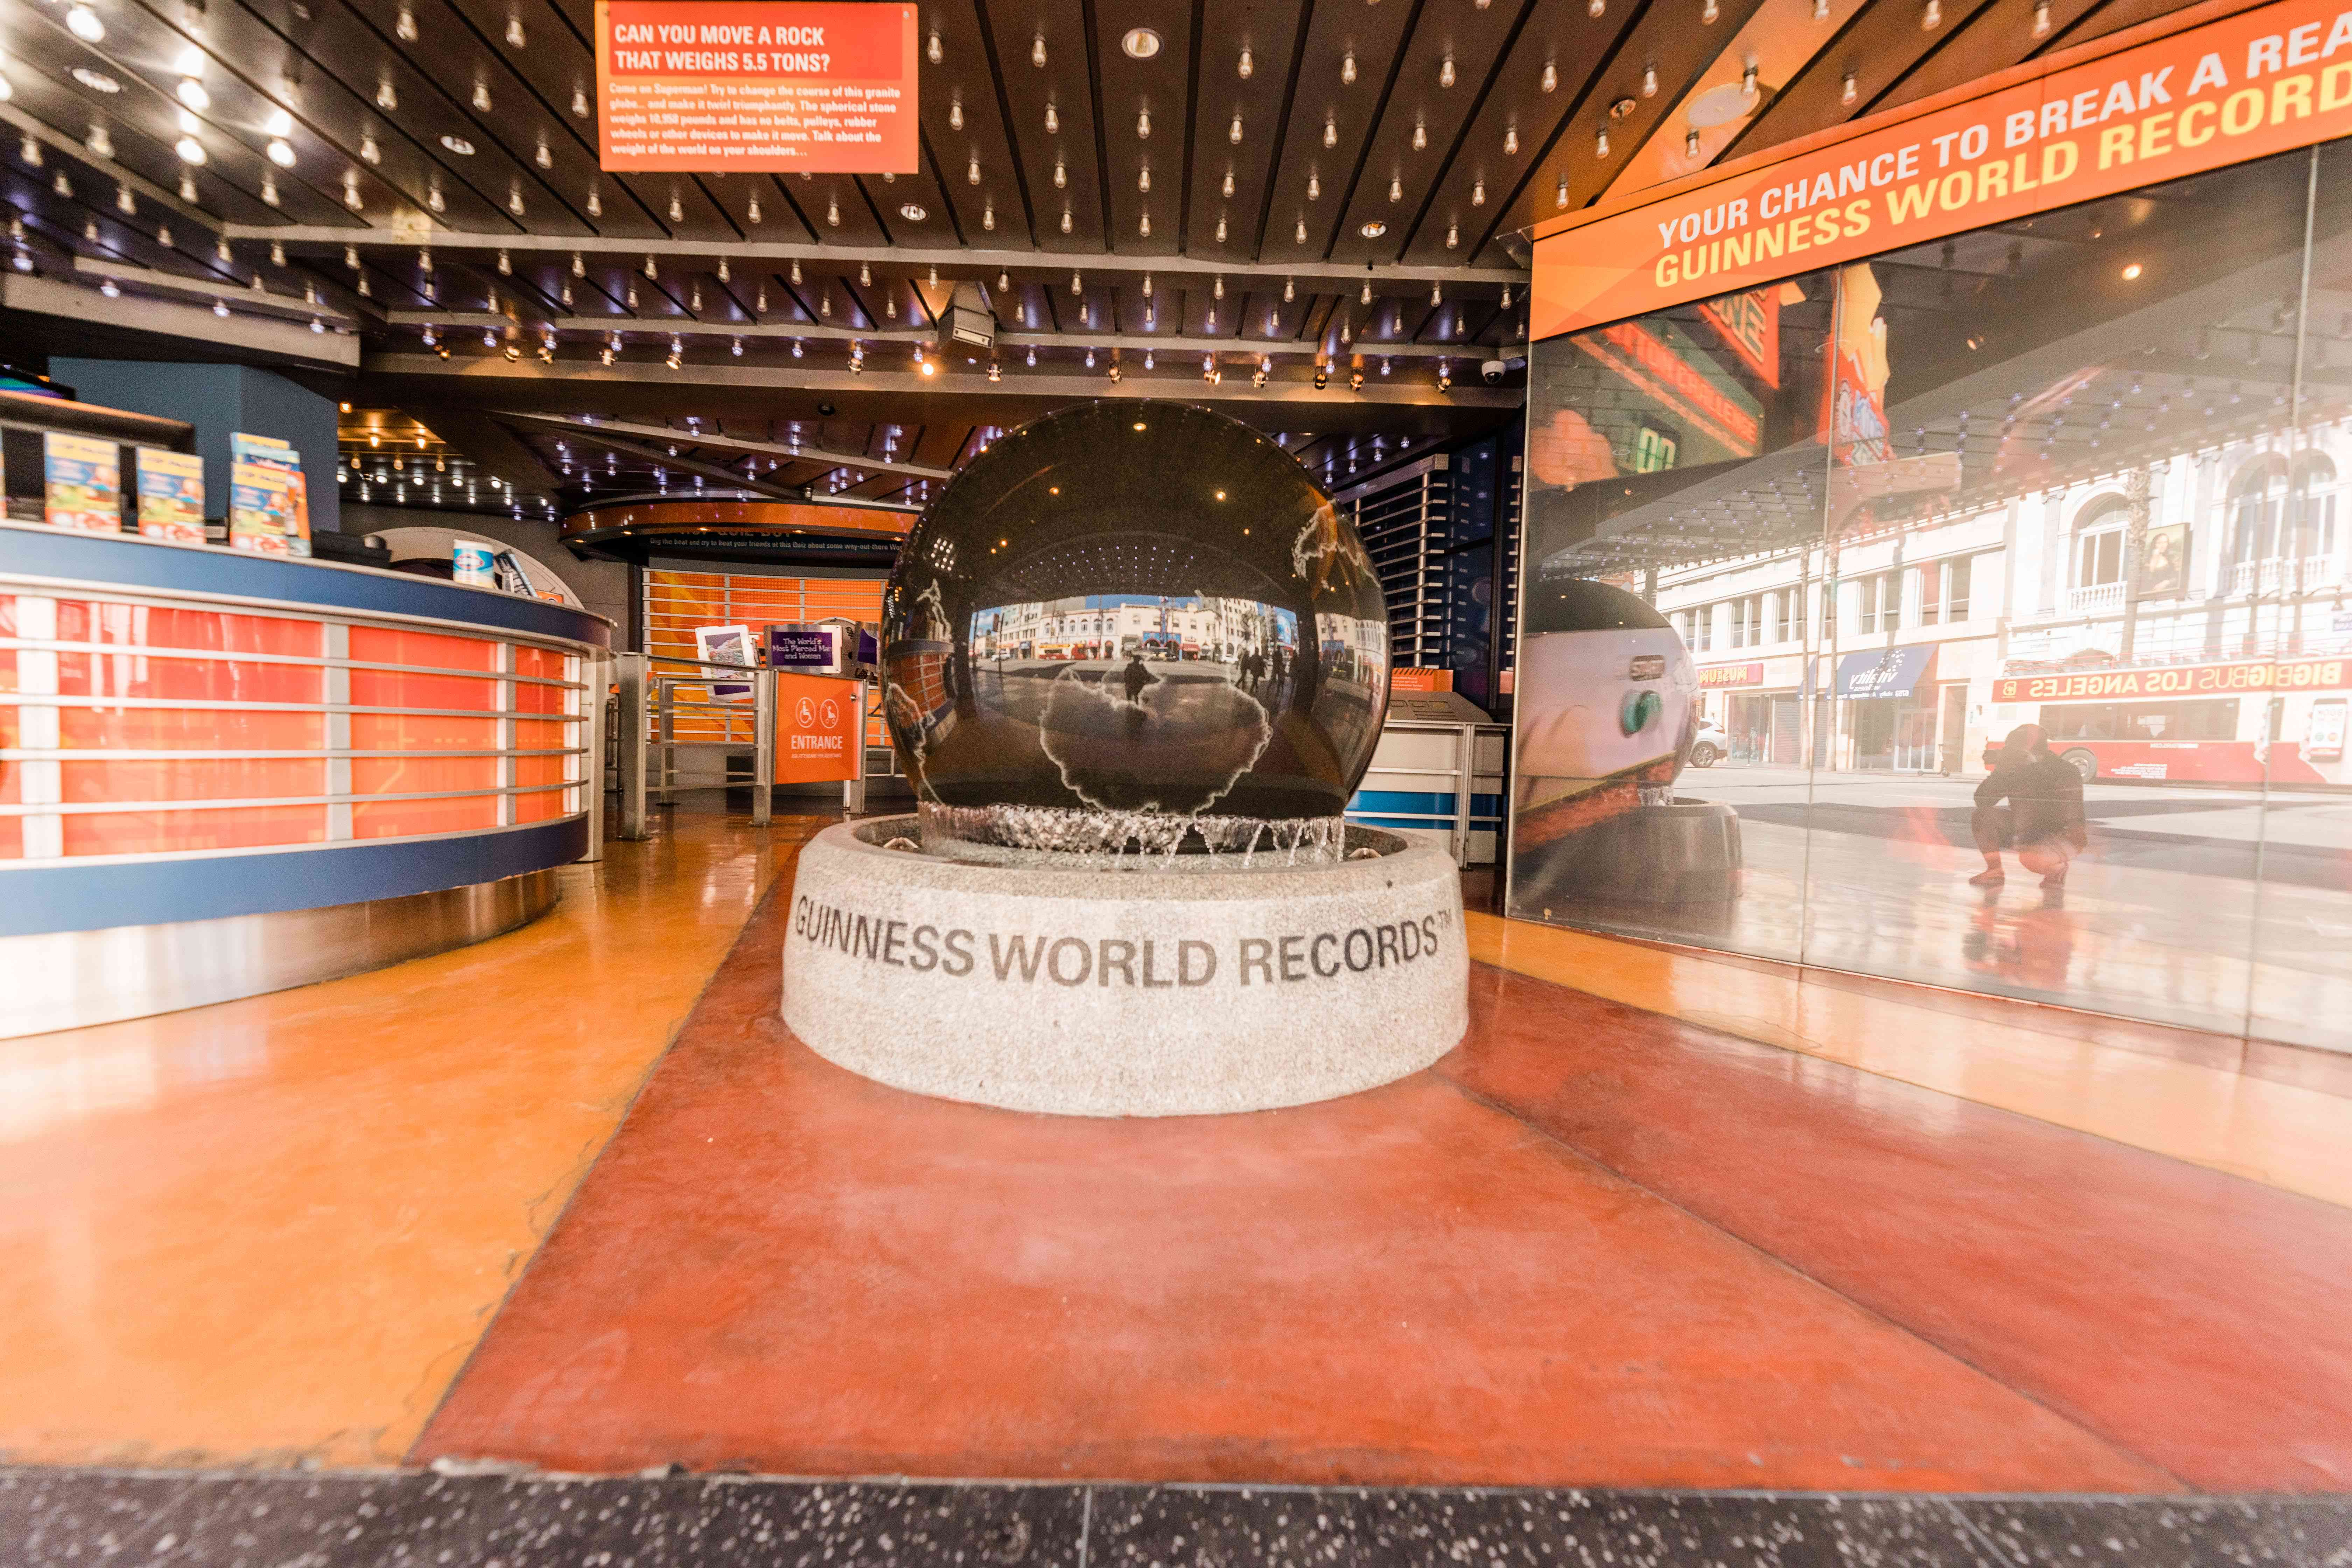 Guinness World Records Museum, Los Angeles, CA